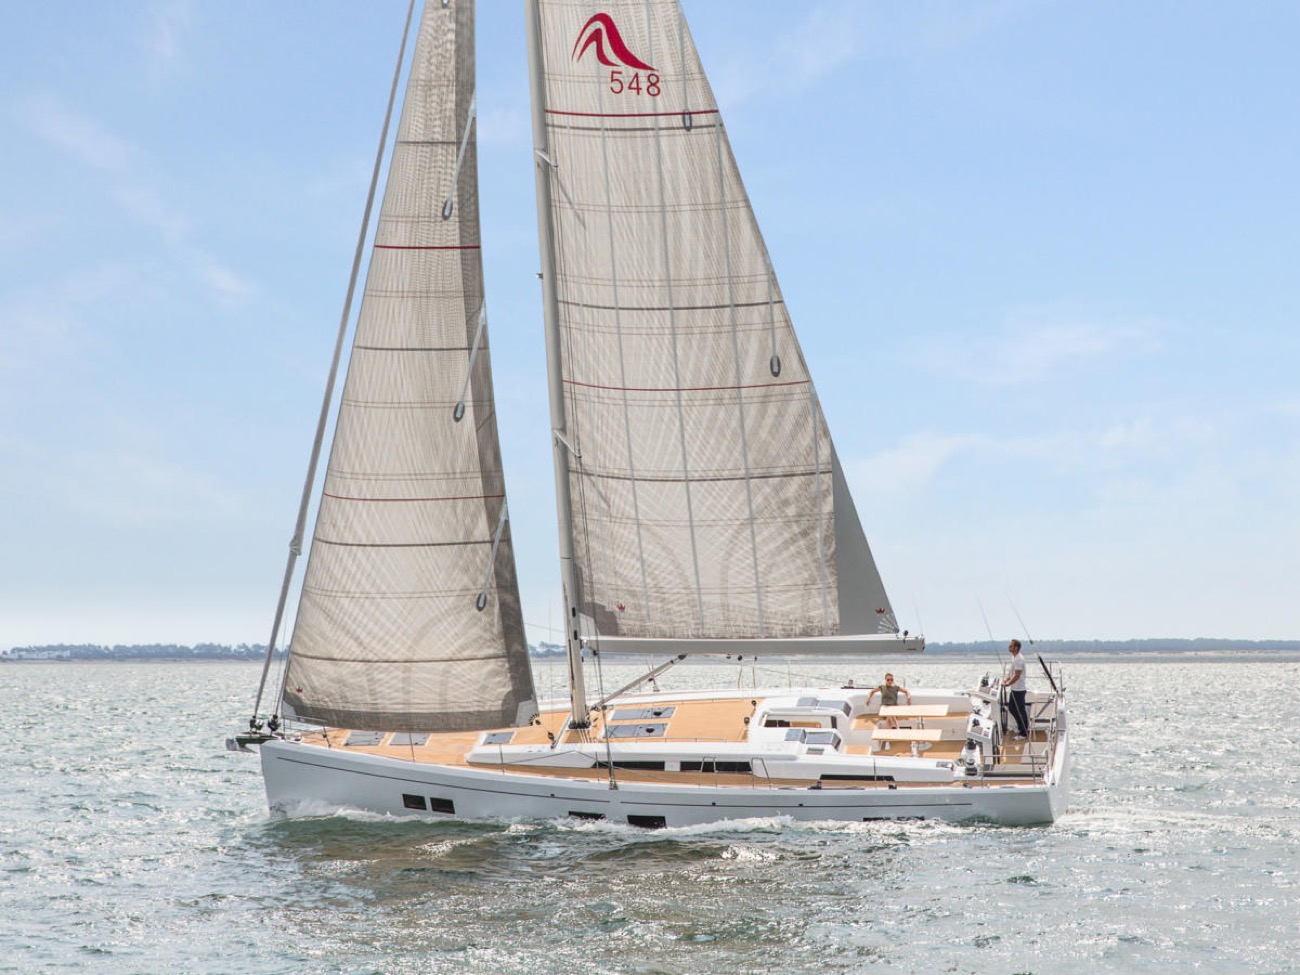 voilier Hanse 548 Wrighton Yachts